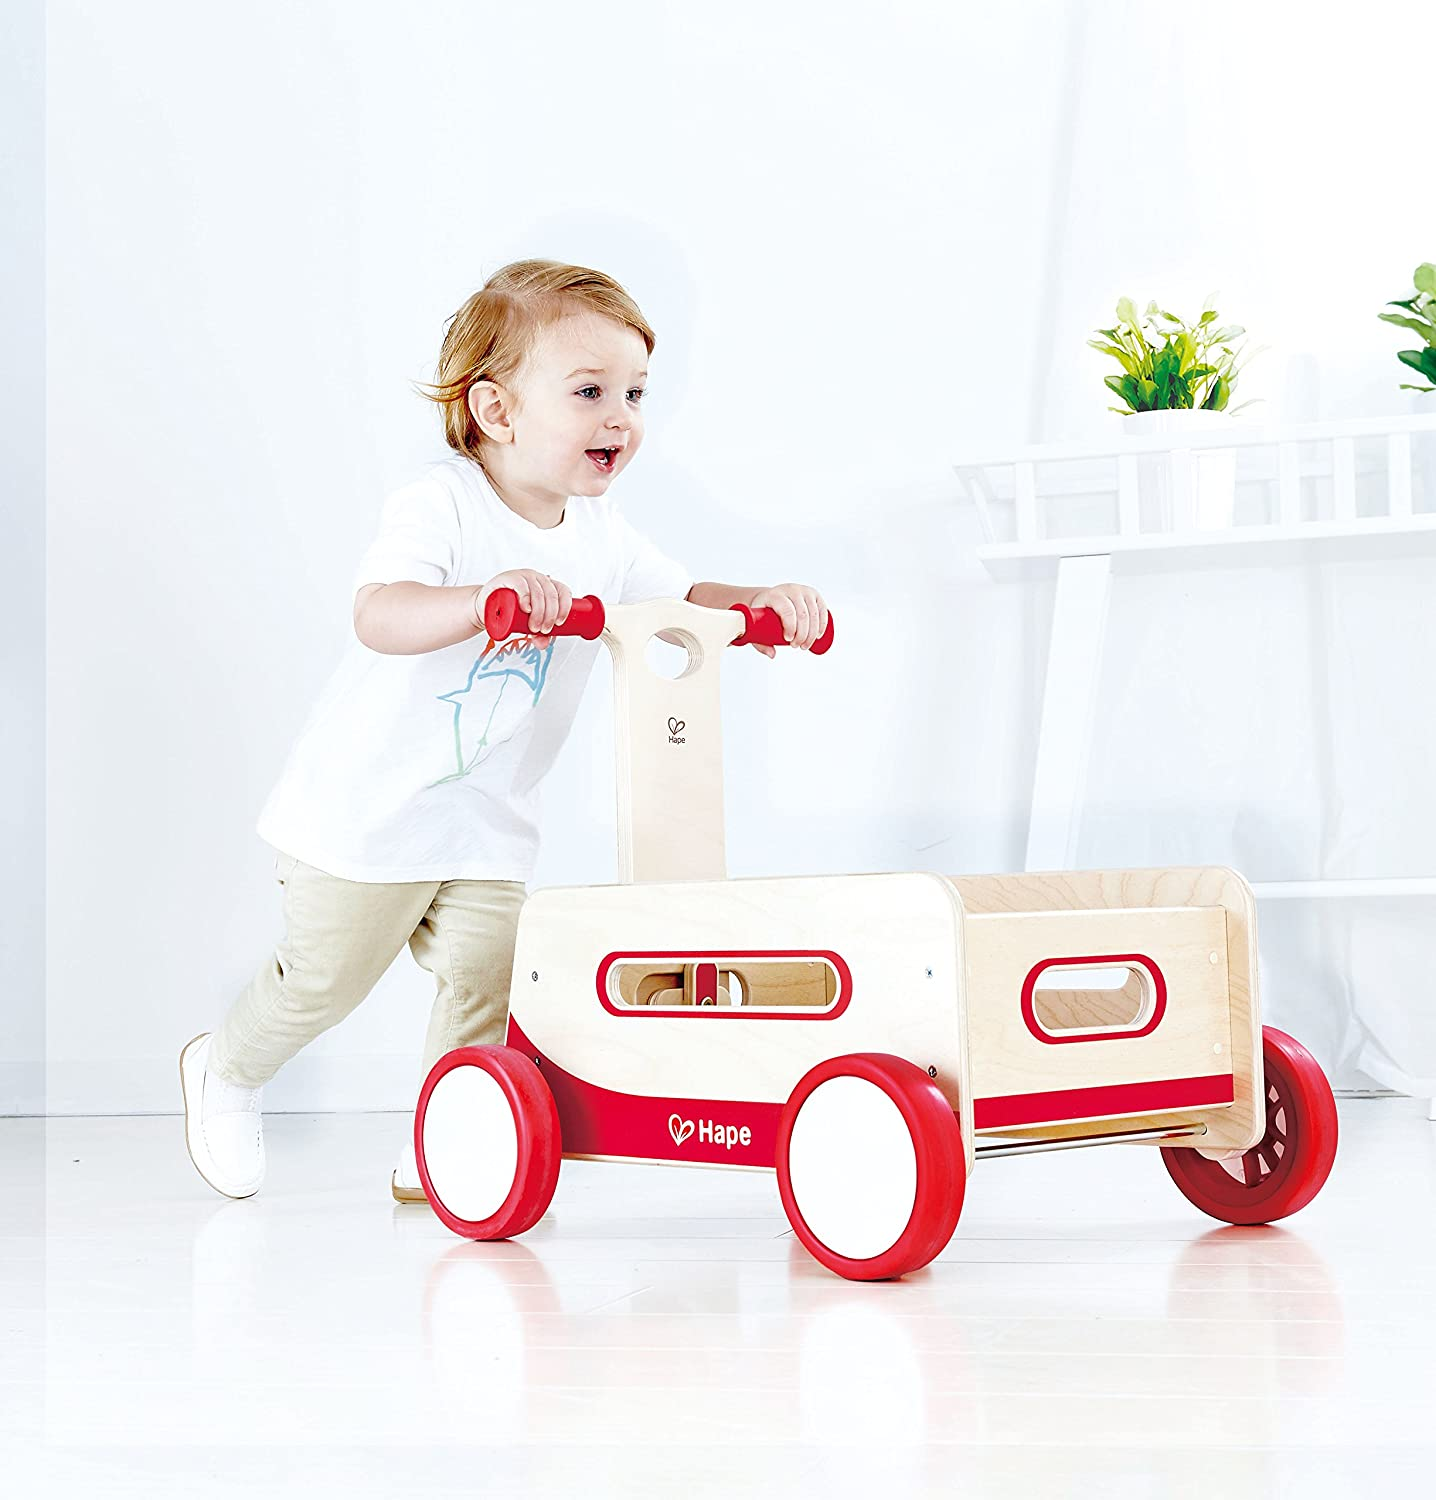 Hape Red Wonder Wagon Wooden Push and Pull Toddler Ride Wood